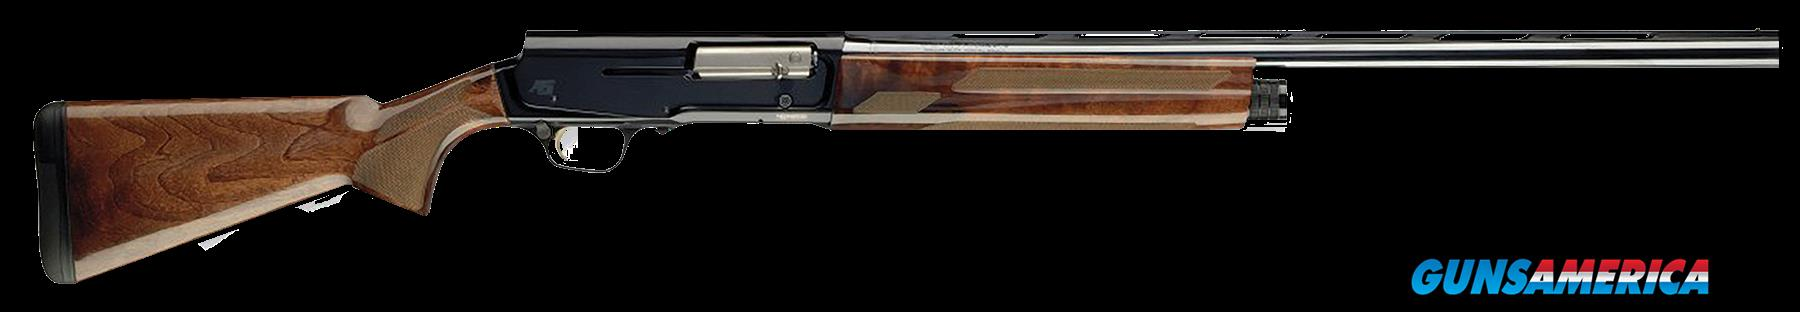 "Browning 0118002004 A5 Hunter Semi-Automatic 12 Gauge 28"" 3.5"" Walnut Stk Black Aluminum Alloy  Guns > Shotguns > B Misc Shotguns"